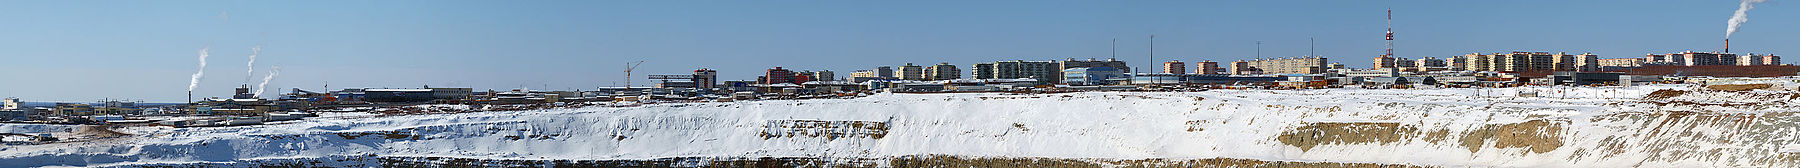 Diamond mine. Mirny in Yakutia. 03.jpg